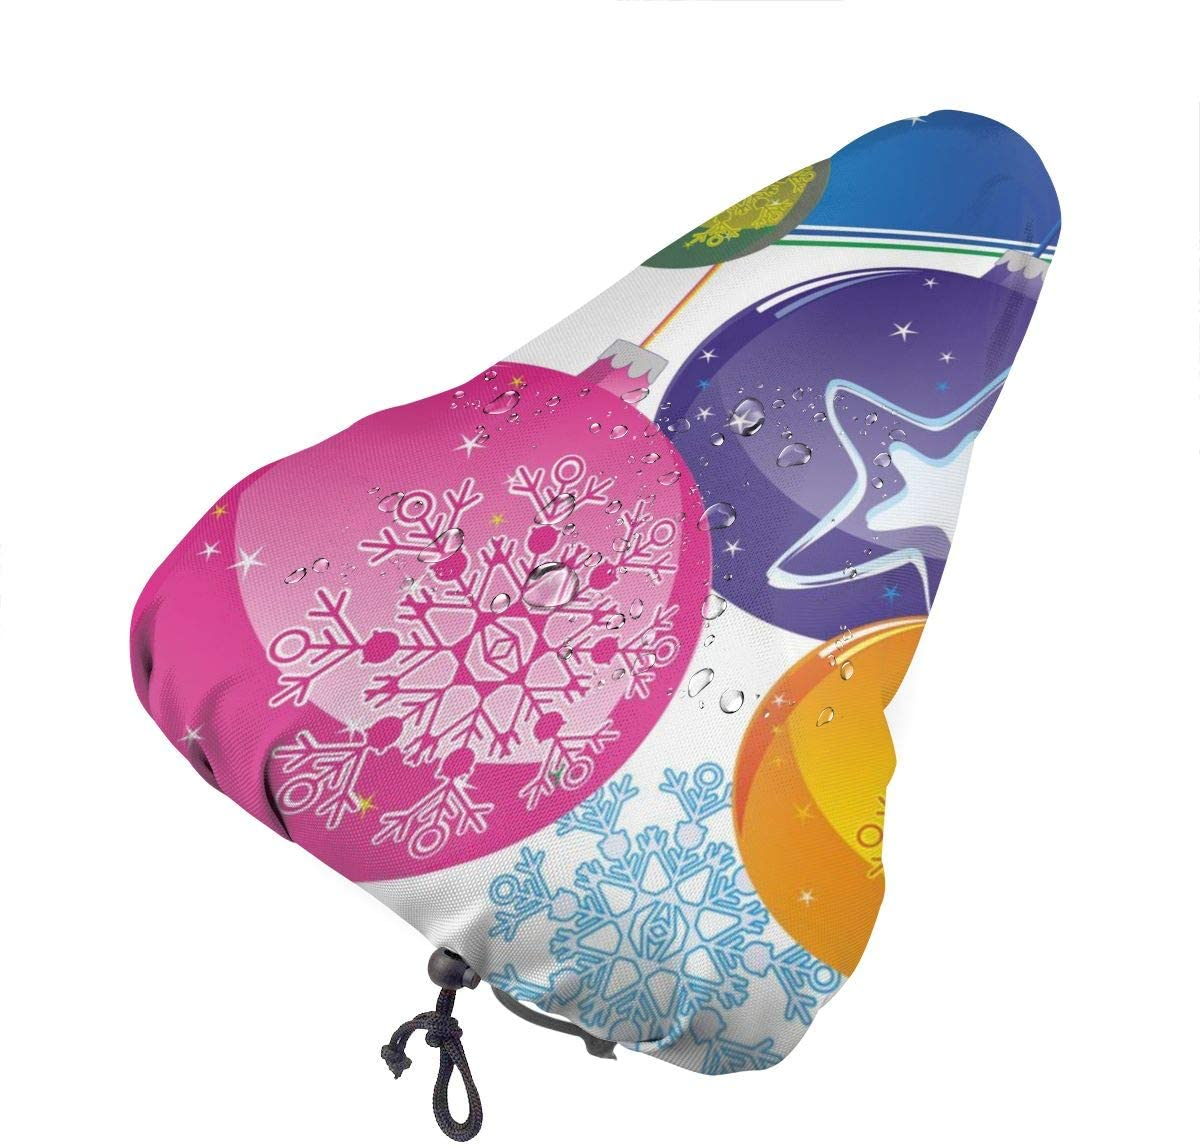 ZHOUSUN Waterproof Bike Seat Cover Watercolor Abstract Blue Retro Floral Bicycle Saddle Rain Dust Covers with Drawstring,Comfort for Women,Men,Kids